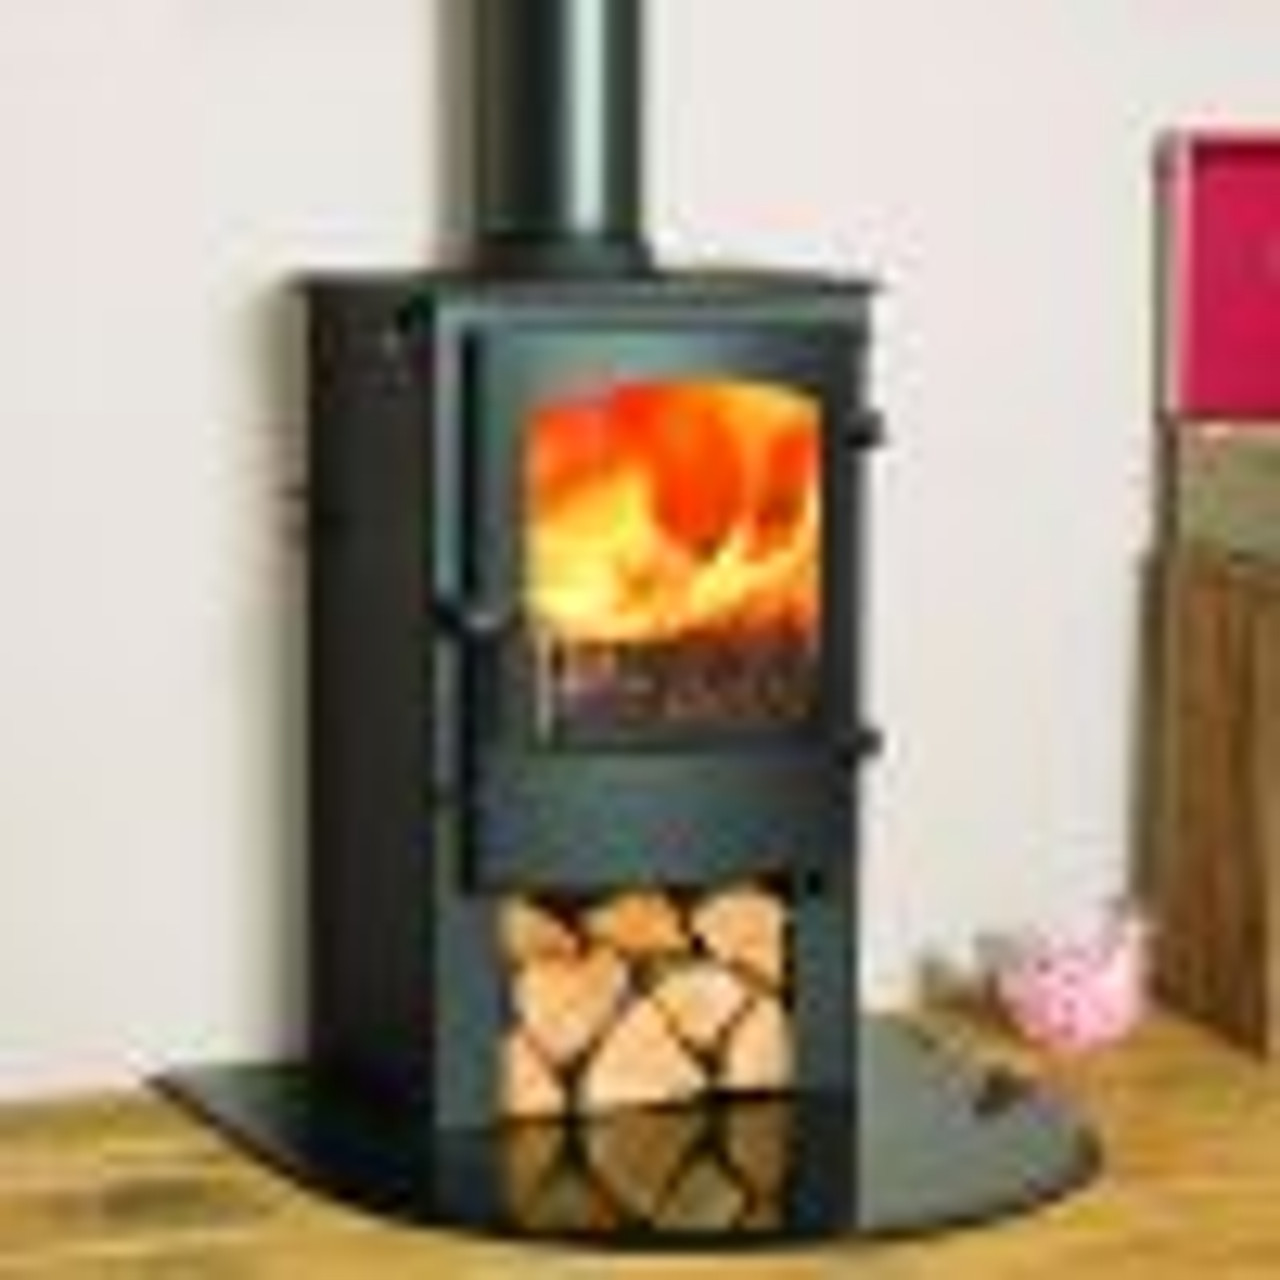 Town & Country Rosedale 7.5kw Stove